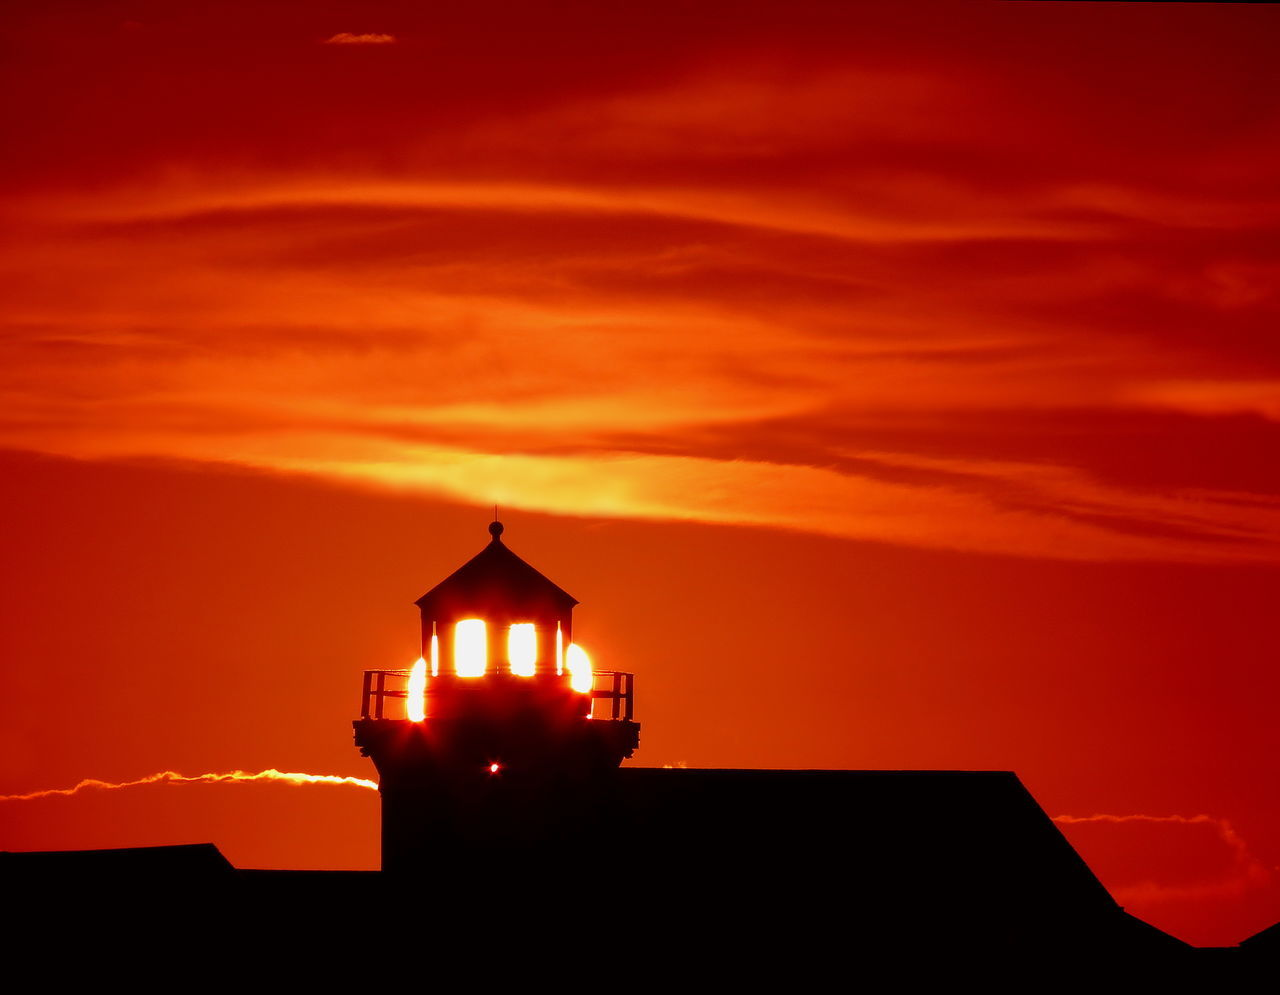 Like a guiding light of hope in the darkness, the light from the setting sun is refracted from this old lighthouse tower to send out brilliant illumination. Clouds Darkness Faith Fiery Gold Golden Guiding Help Hope Illuminated Illumination Light Lighthouse Love Orange Red Romantic Ruby Scarlet Shadow Silhouette Skies Sky Sun Sunset